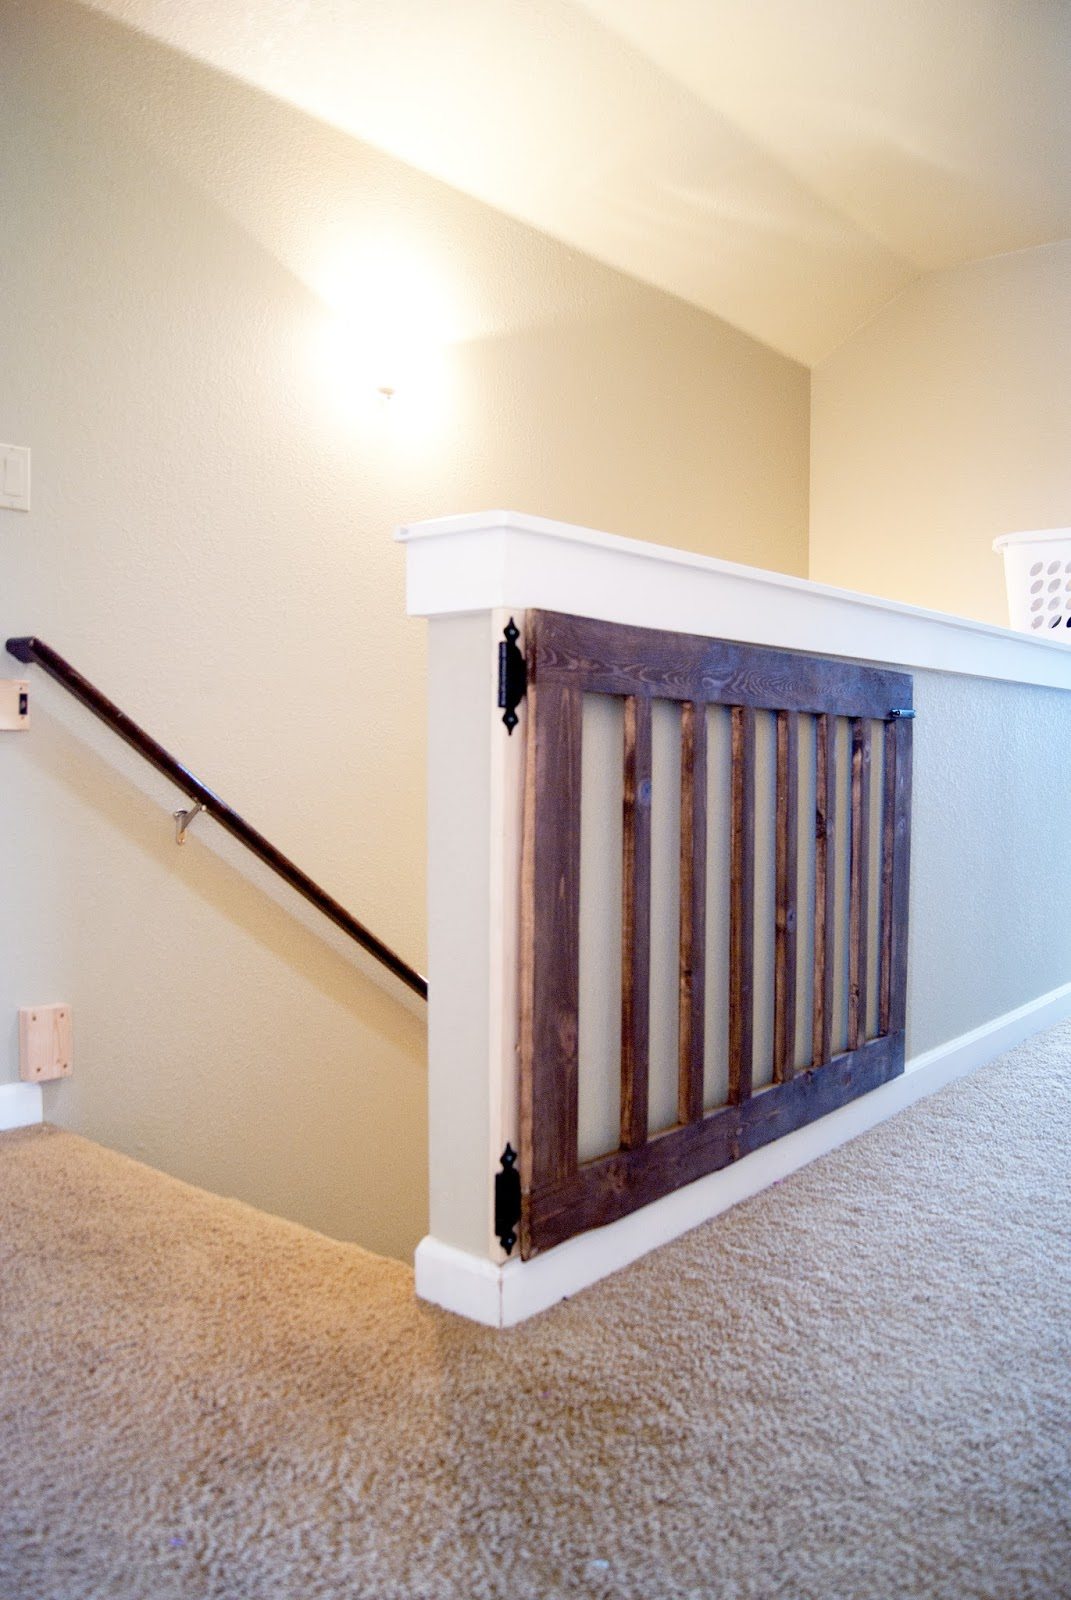 Building A Wood Baby Gate Plans Diy Free Download How To Build A